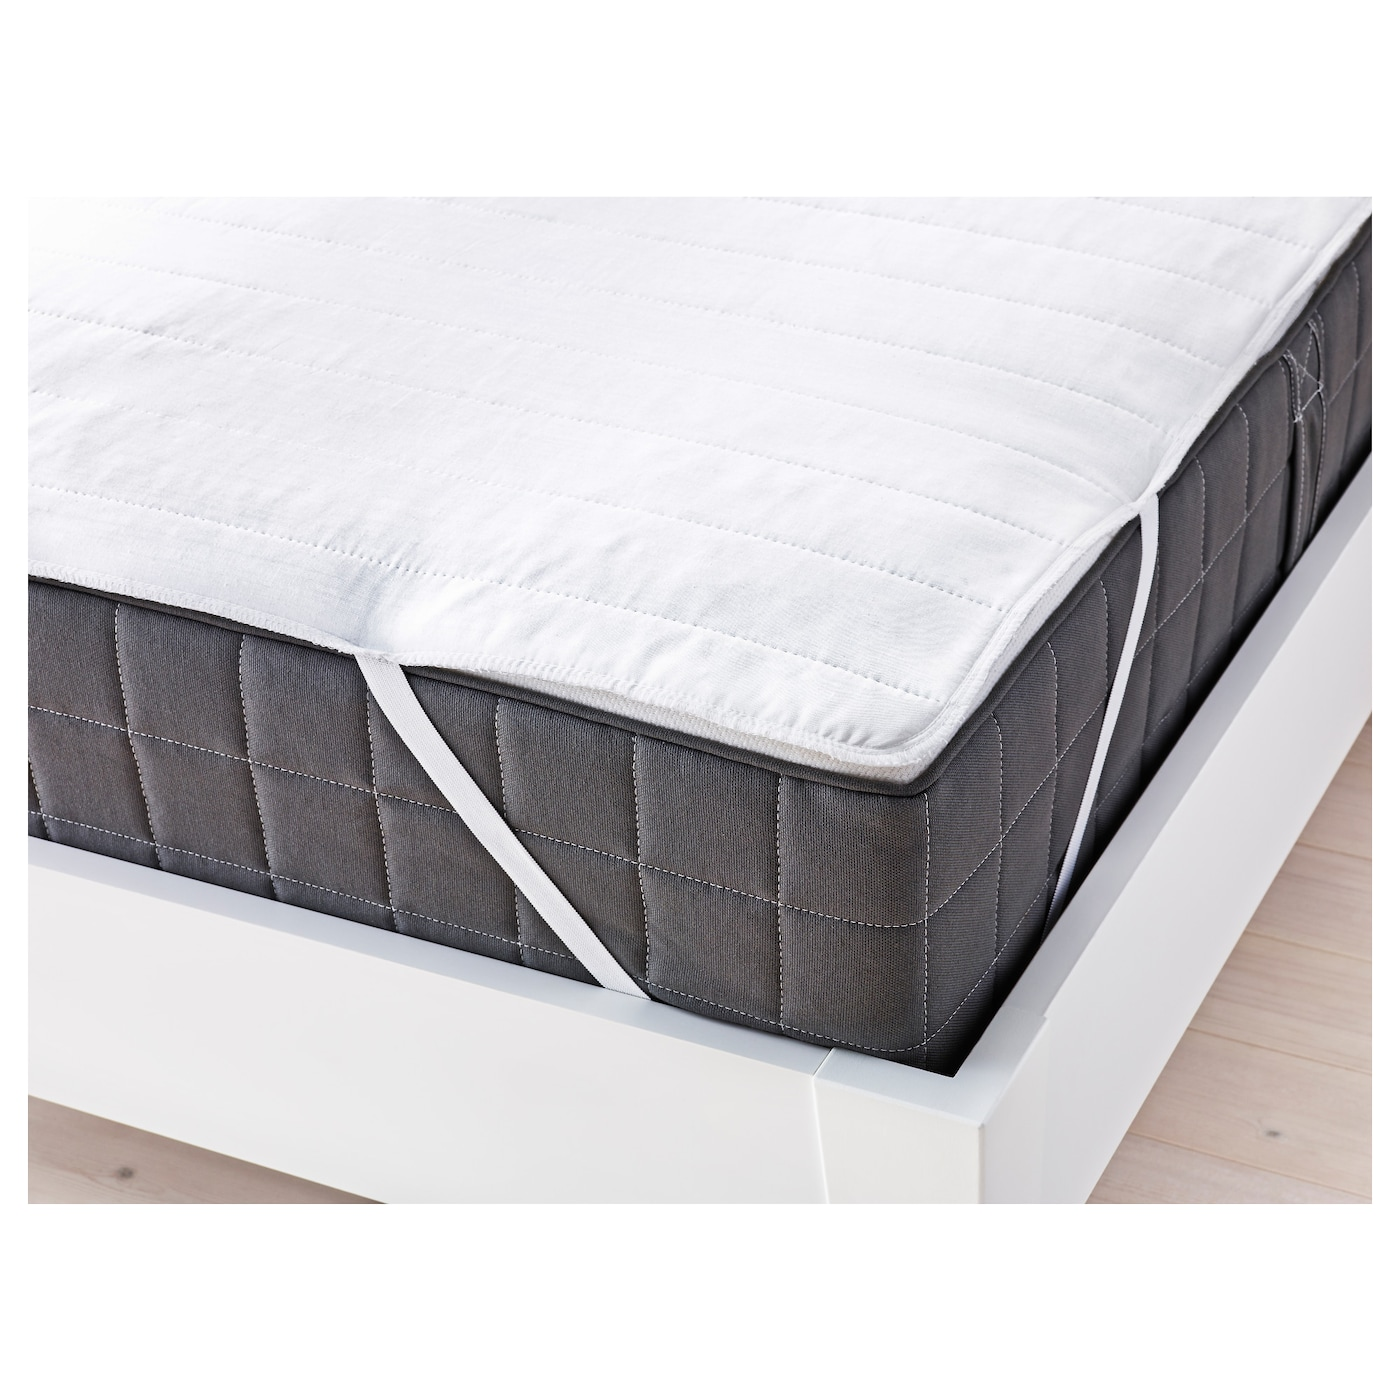 ngsvide mattress protector double ikea. Black Bedroom Furniture Sets. Home Design Ideas